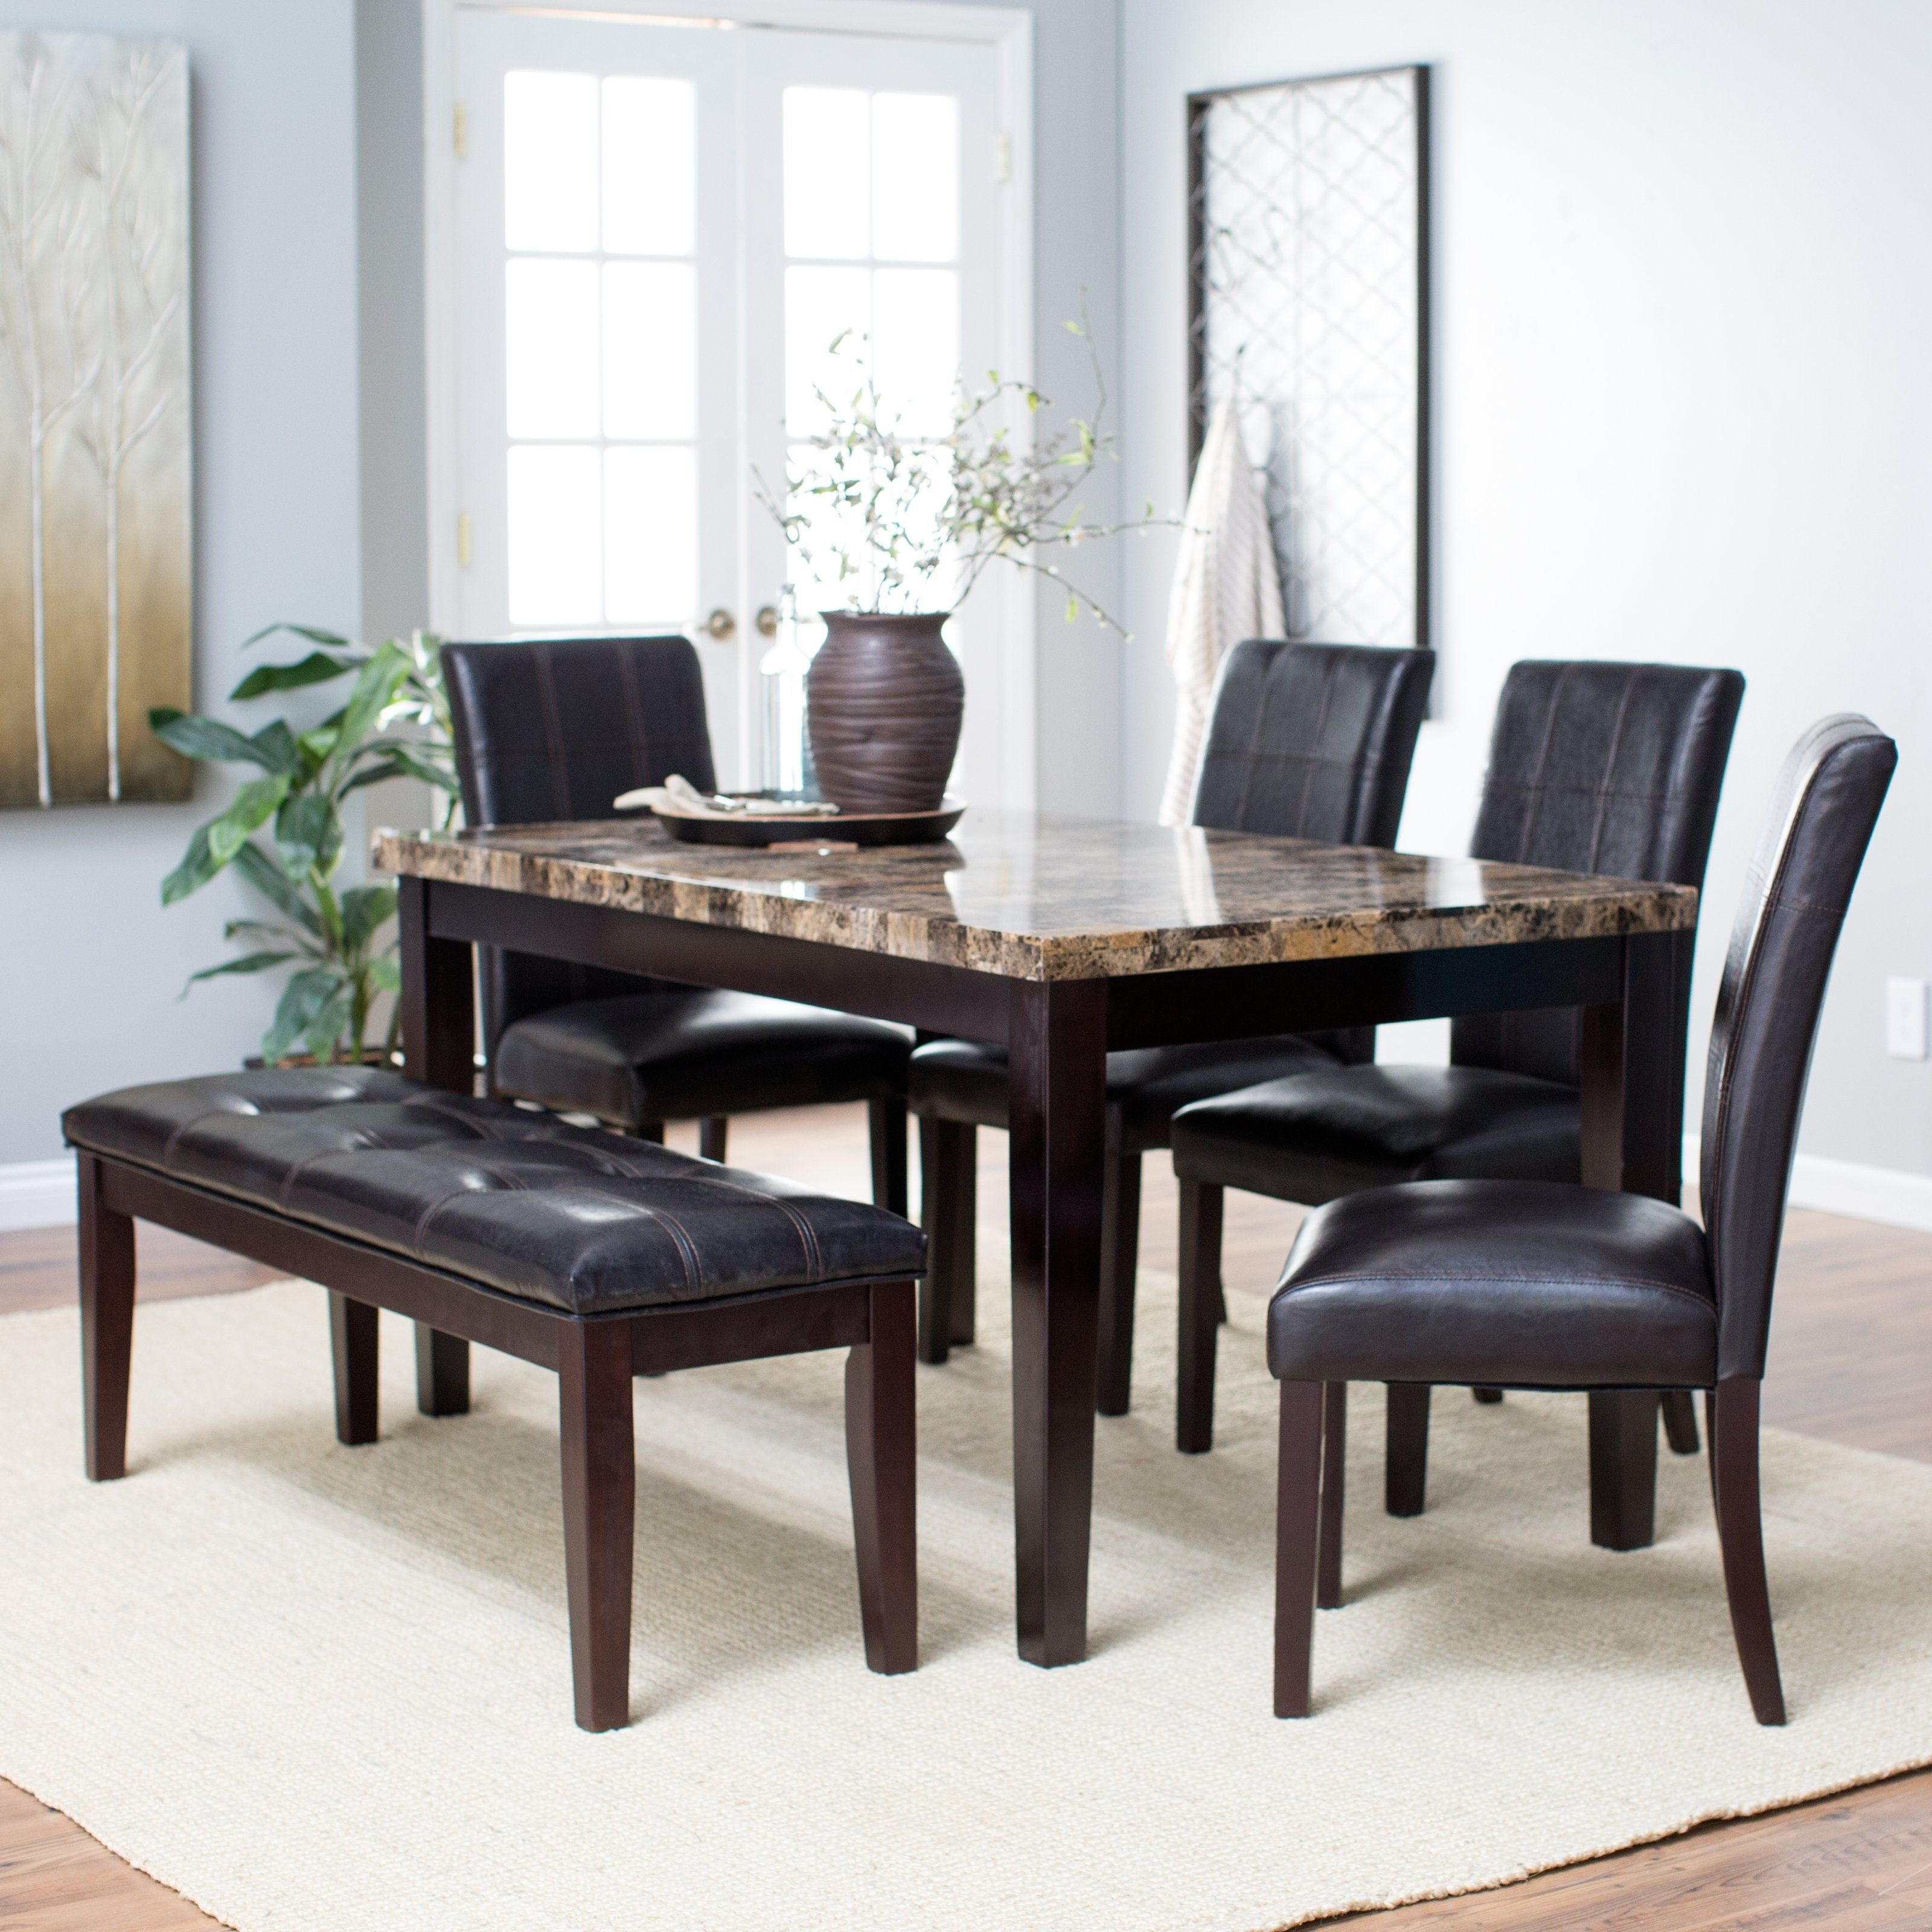 Gallery 1 Margin Auto Gallery 1 Gallery Item Float Left Margin To Kitchen Table Settings Large Dining Room Table Dining Table Black